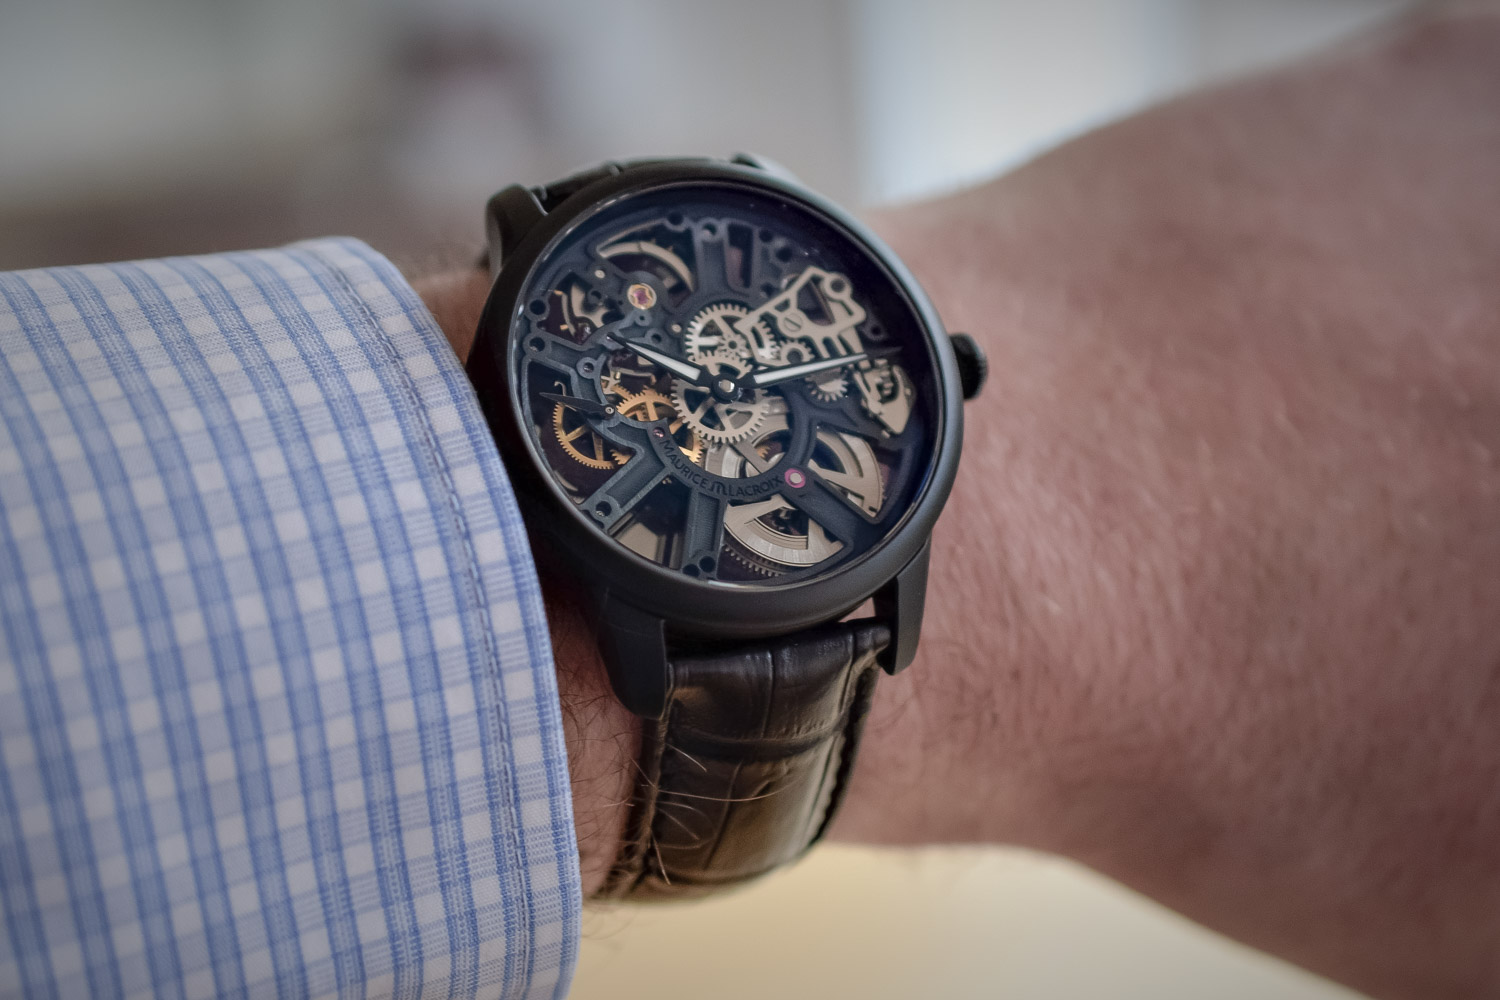 Baselworld 2017 – The Maurice Lacroix Masterpiece Skeleton Full Black (With a Cool Feature on the Back)